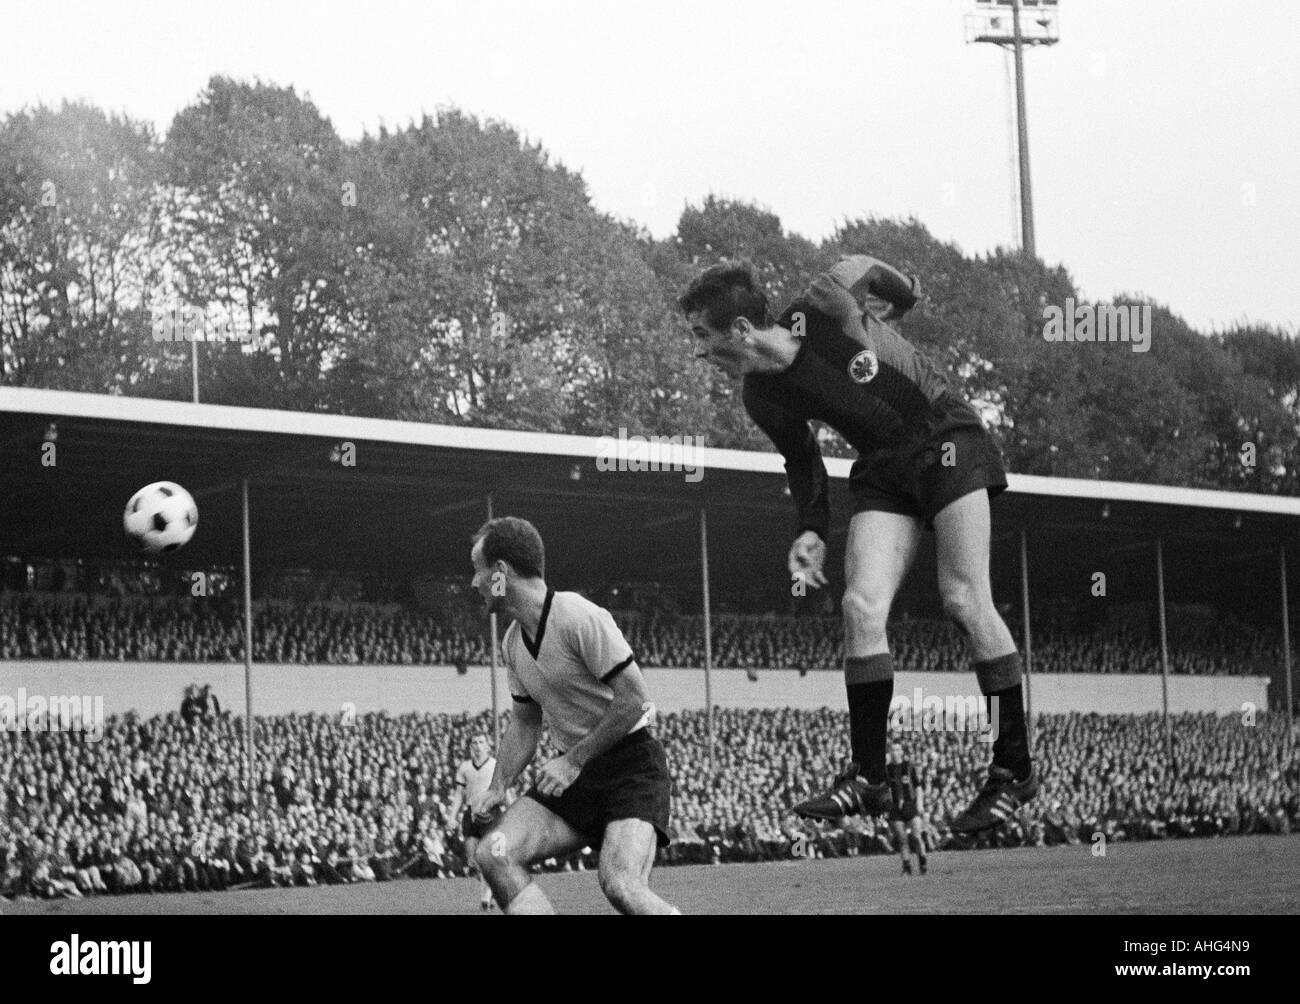 football, Bundesliga, 1967/1968, Borussia Dortmund versus Eintracht Frankfurt 2:1, Stadium Rote Erde in Dortmund, scene of the match, header by Ernst Abbe (Frankfurt, right), left Wilhelm Sturm (BVB) - Stock Image